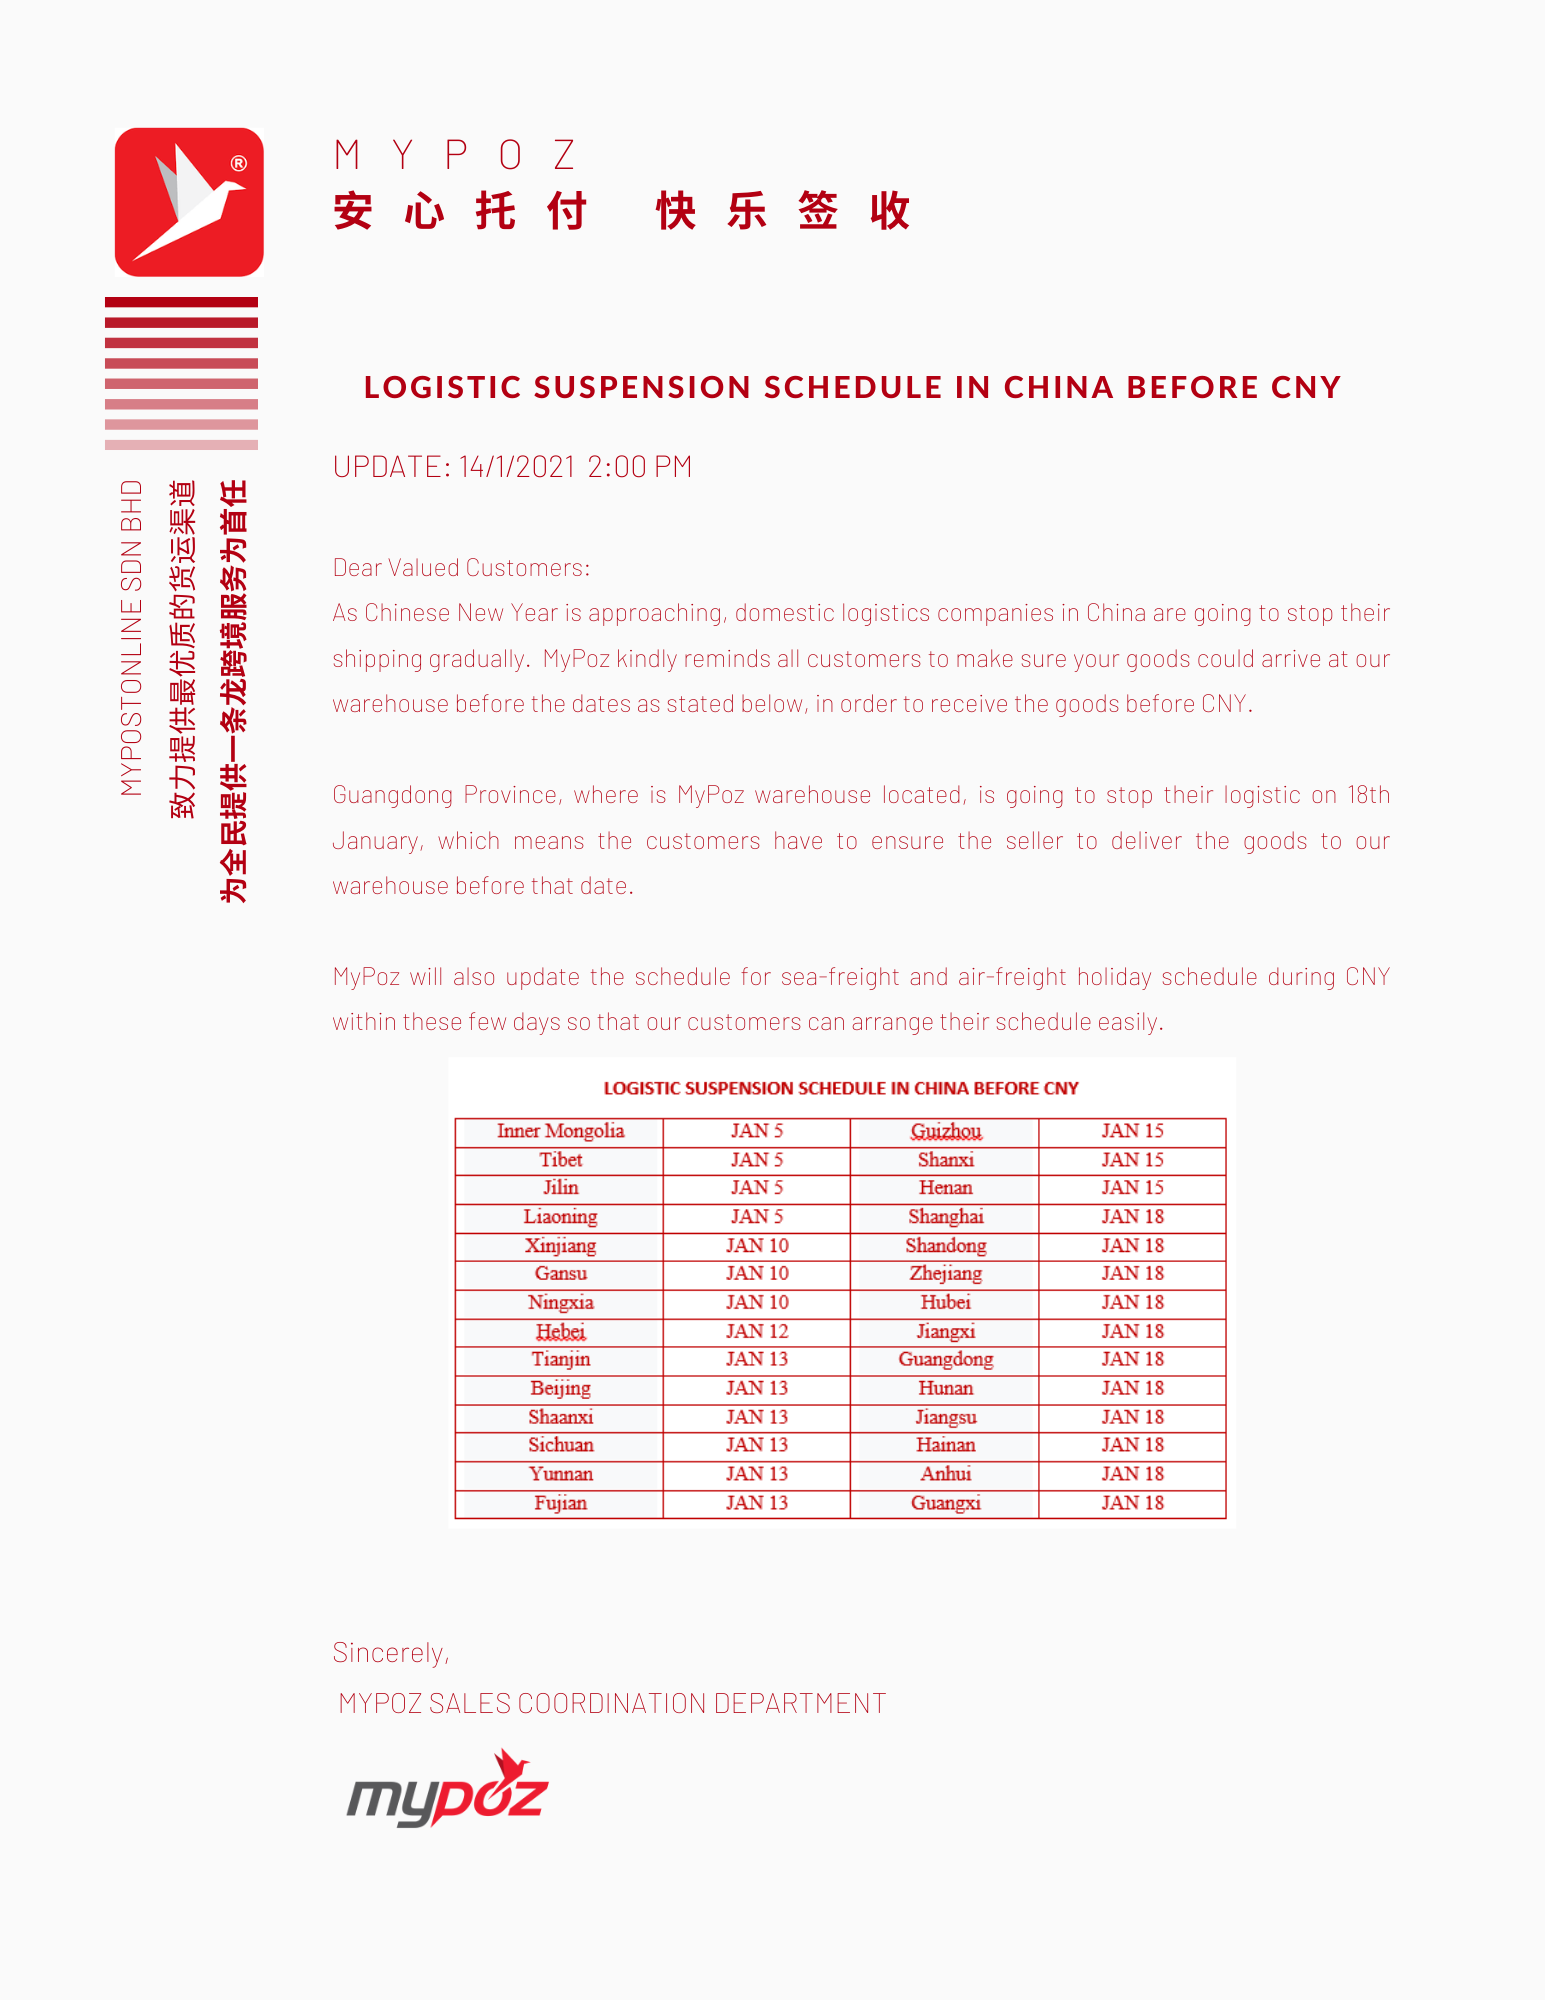 【NOTICE】LOGISTIC SUSPENSION SCHEDULE IN CHINA BEFORE CNY